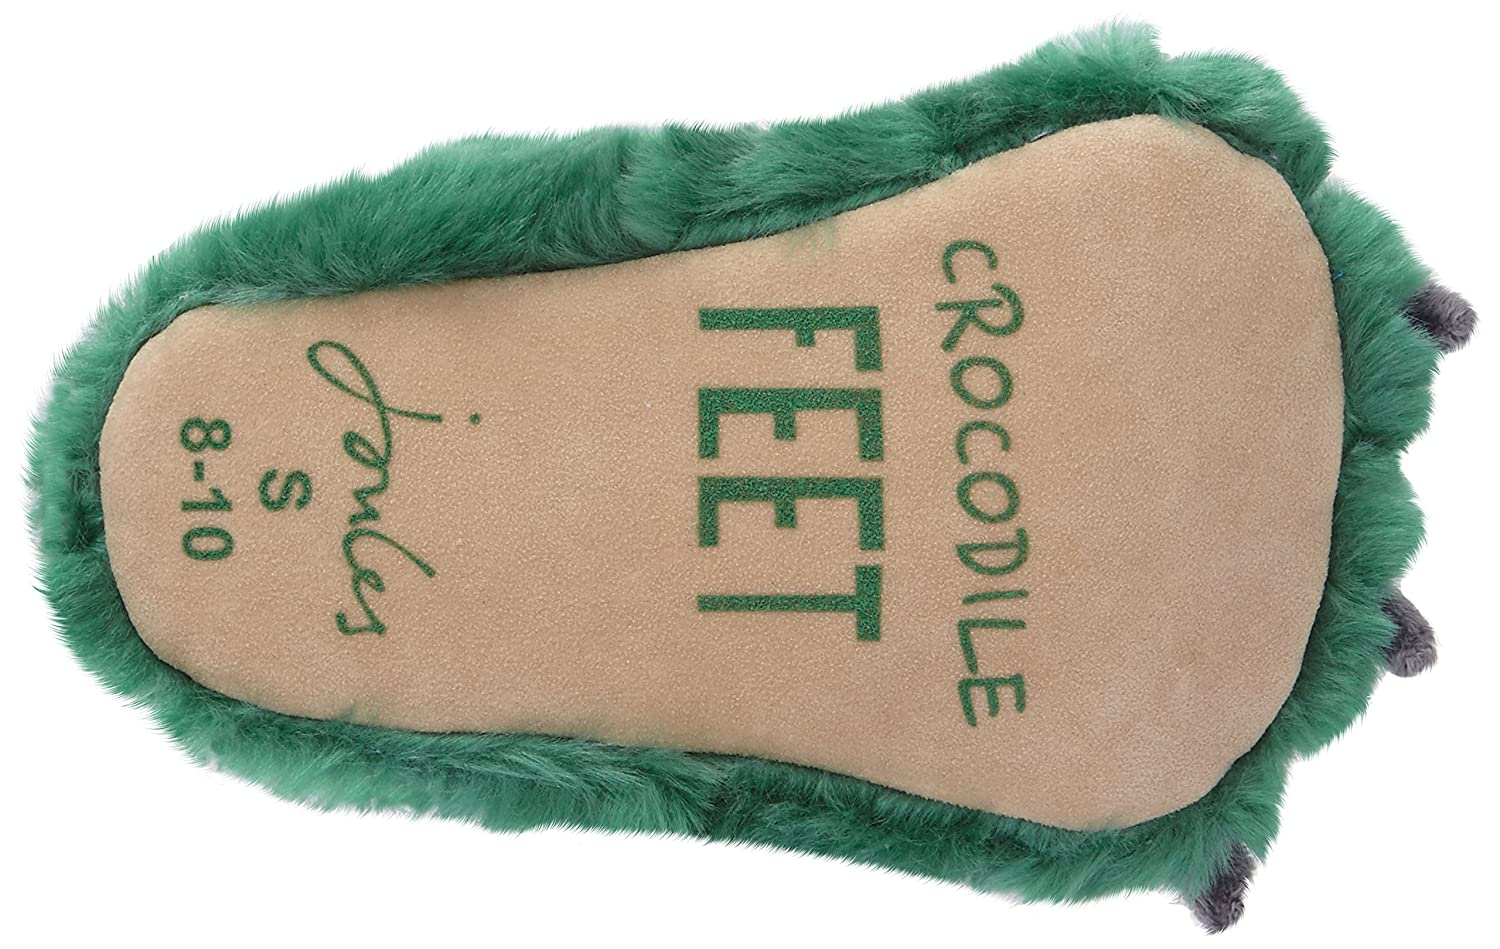 774056d1fbf8 Joules Boy s JNR Monster Feet Arm Warmers Green (Croc) Small  Amazon.co.uk   Shoes   Bags